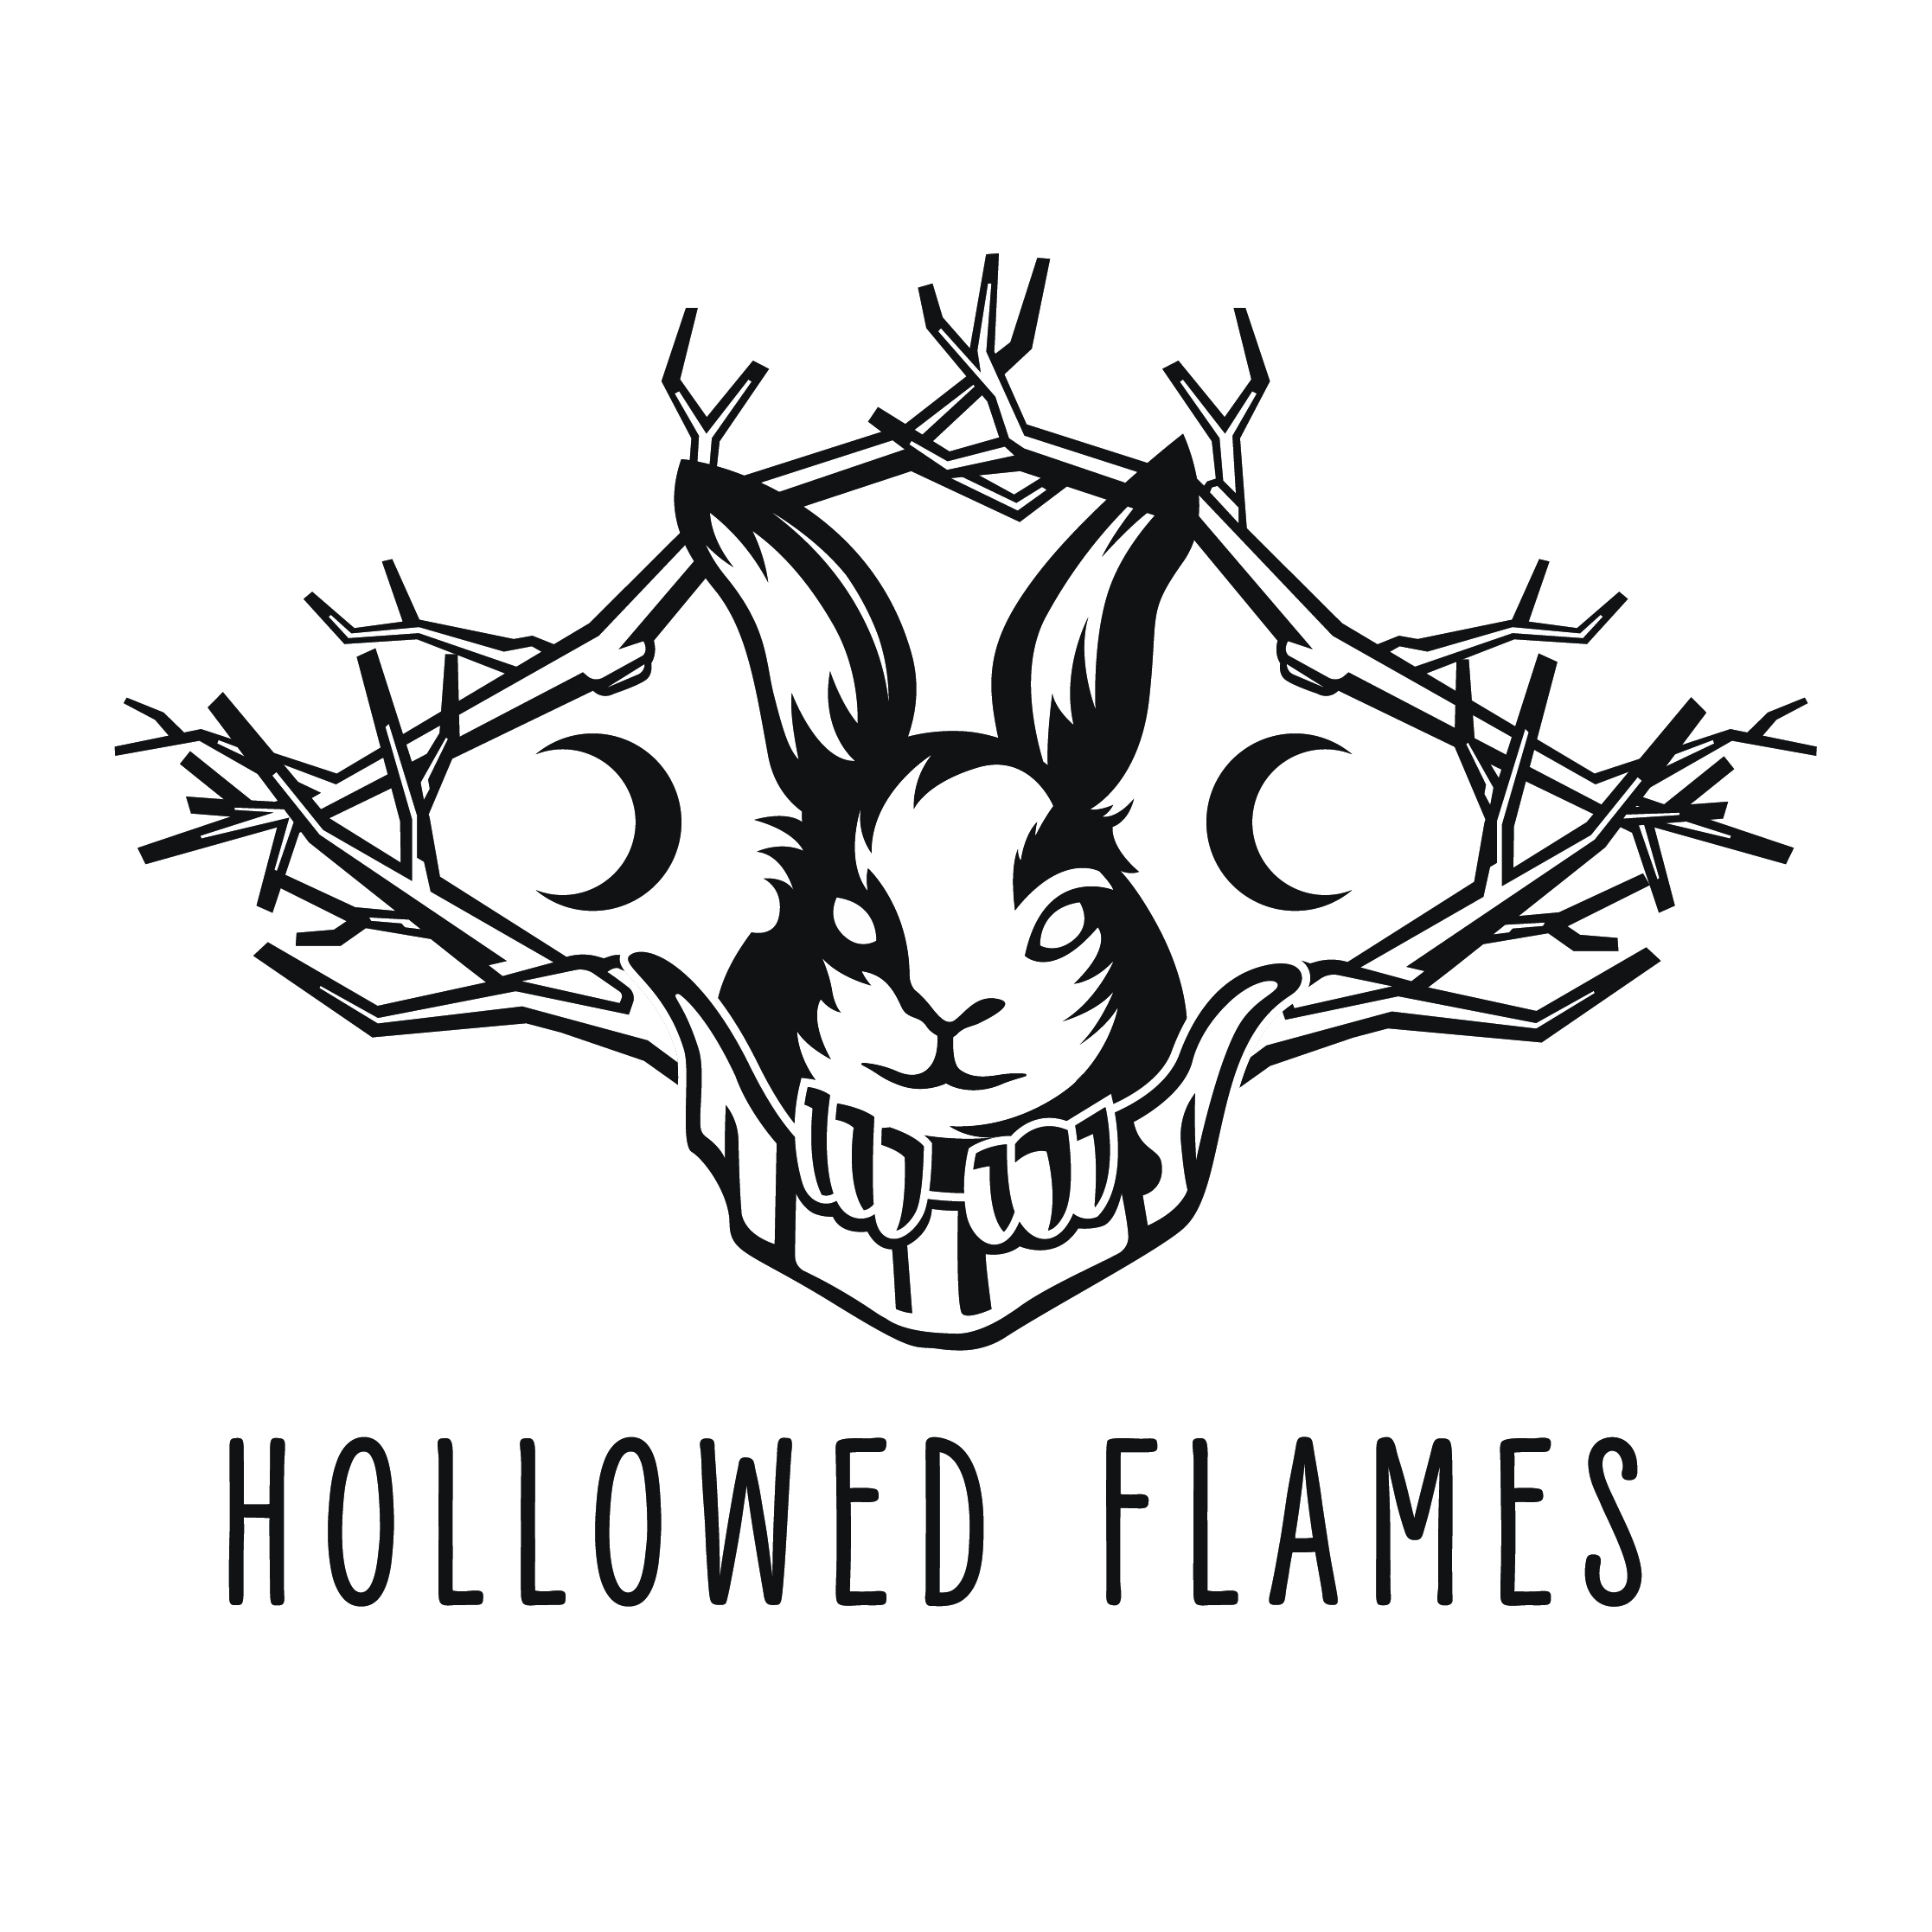 Hollowed Flames  Hollowed Flames is a small homemade candle business.